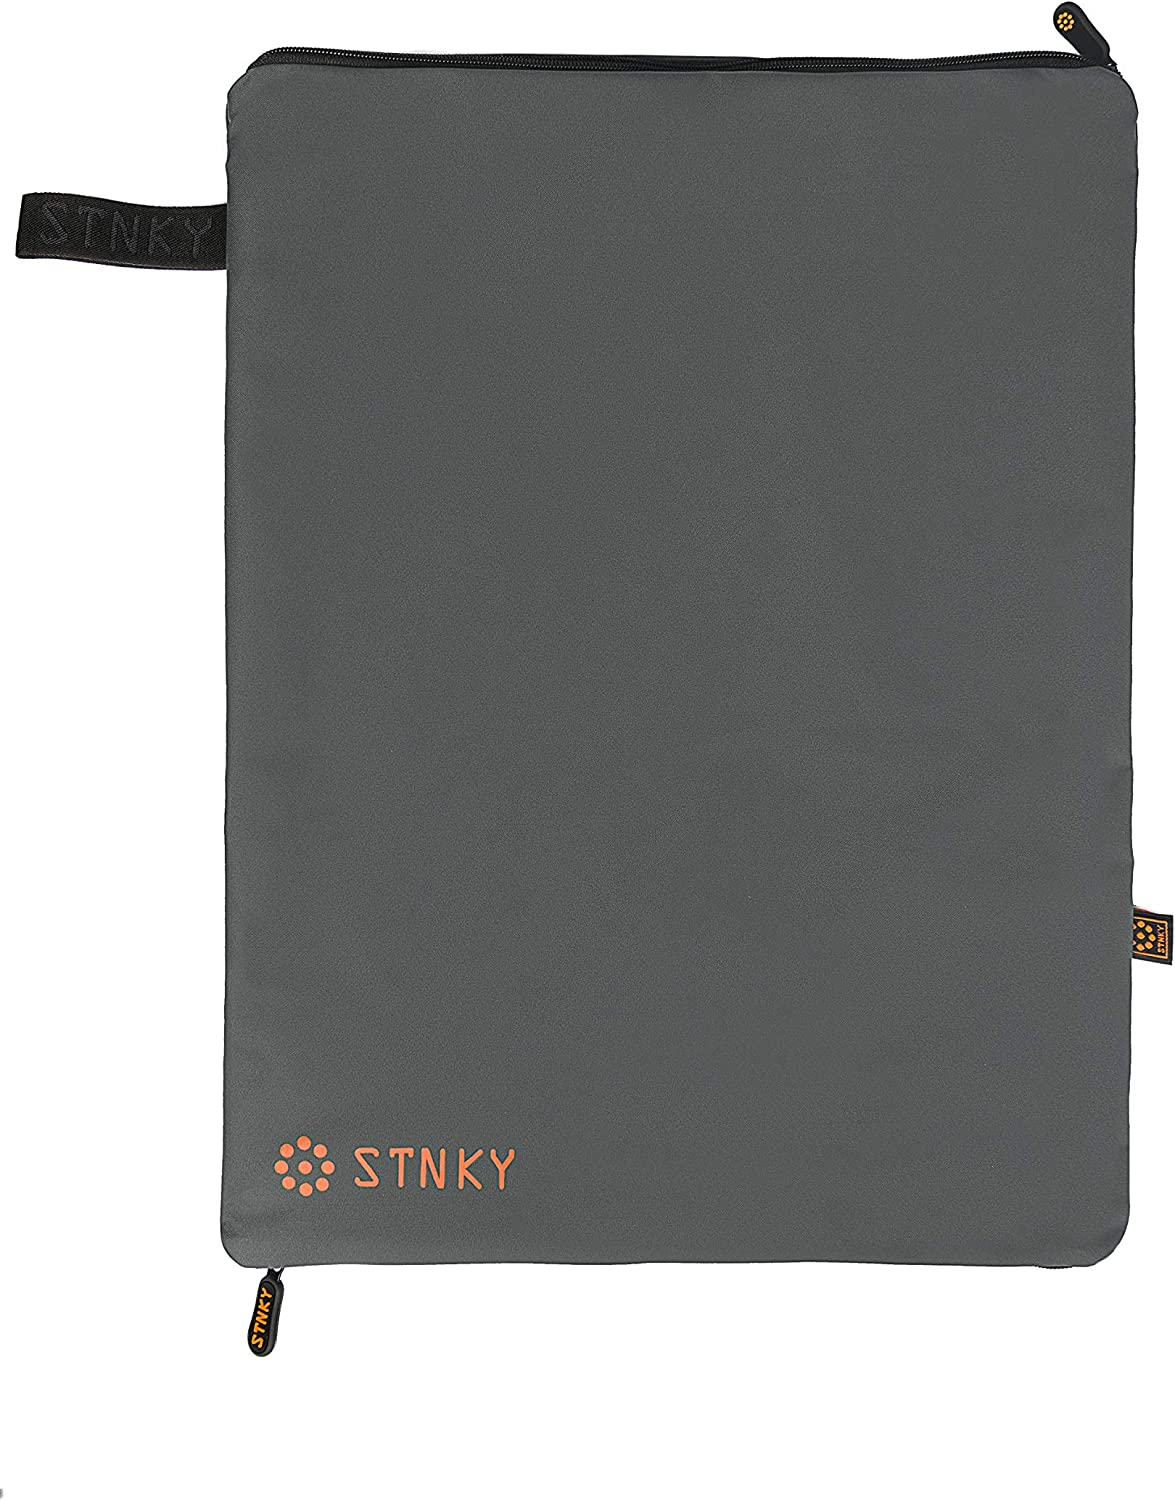 STNKY Bag Pro Wash Bag for Health Workers, Sports, Fitness & Travel (Grey, Standard)